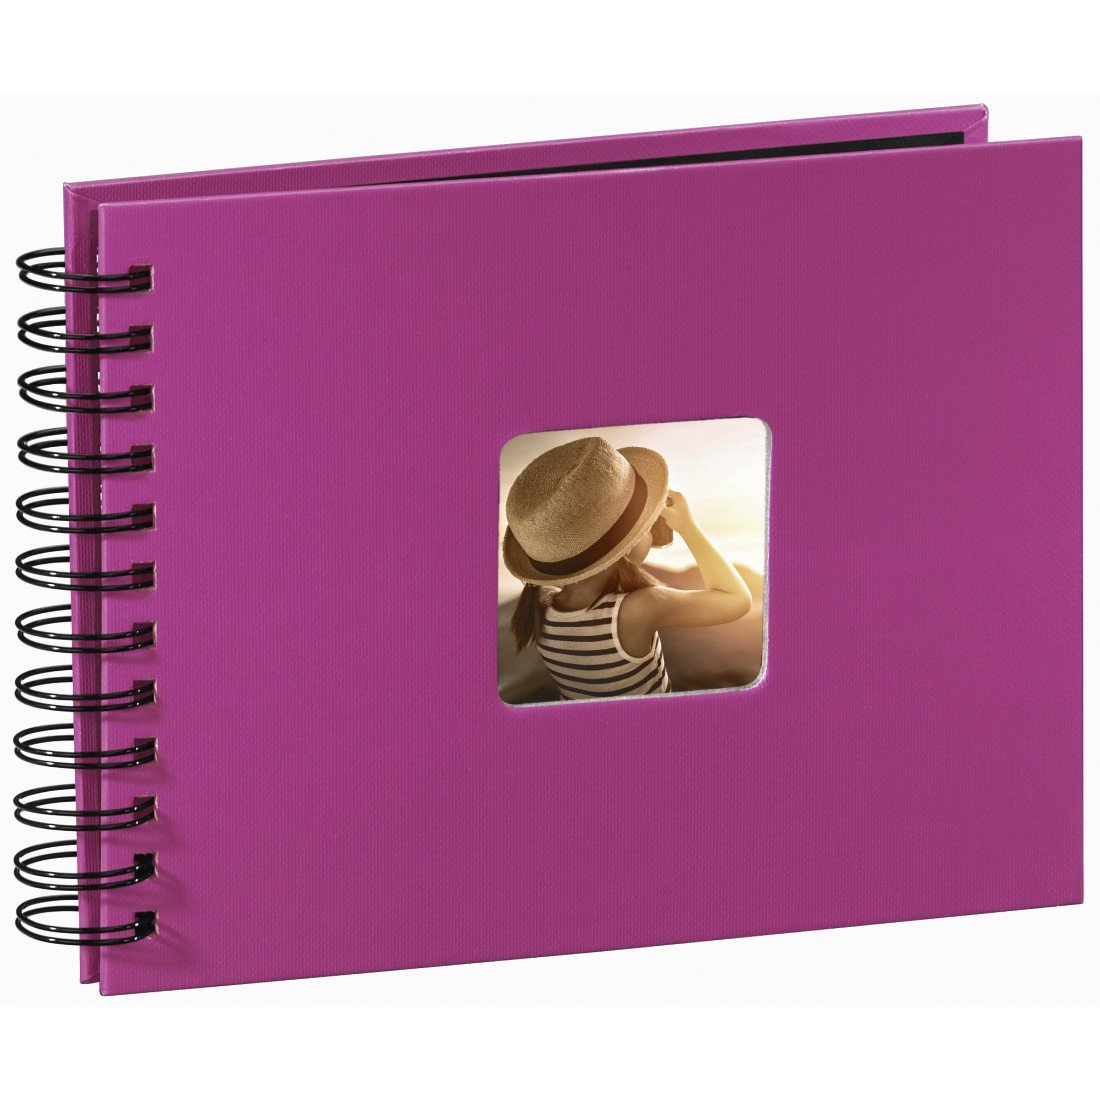 Hama Fine Art photo album, 50 black pages (25 sheets), spiral bound album 24 x 17 cm, with cut-out window in which a picture can be inserted, pink